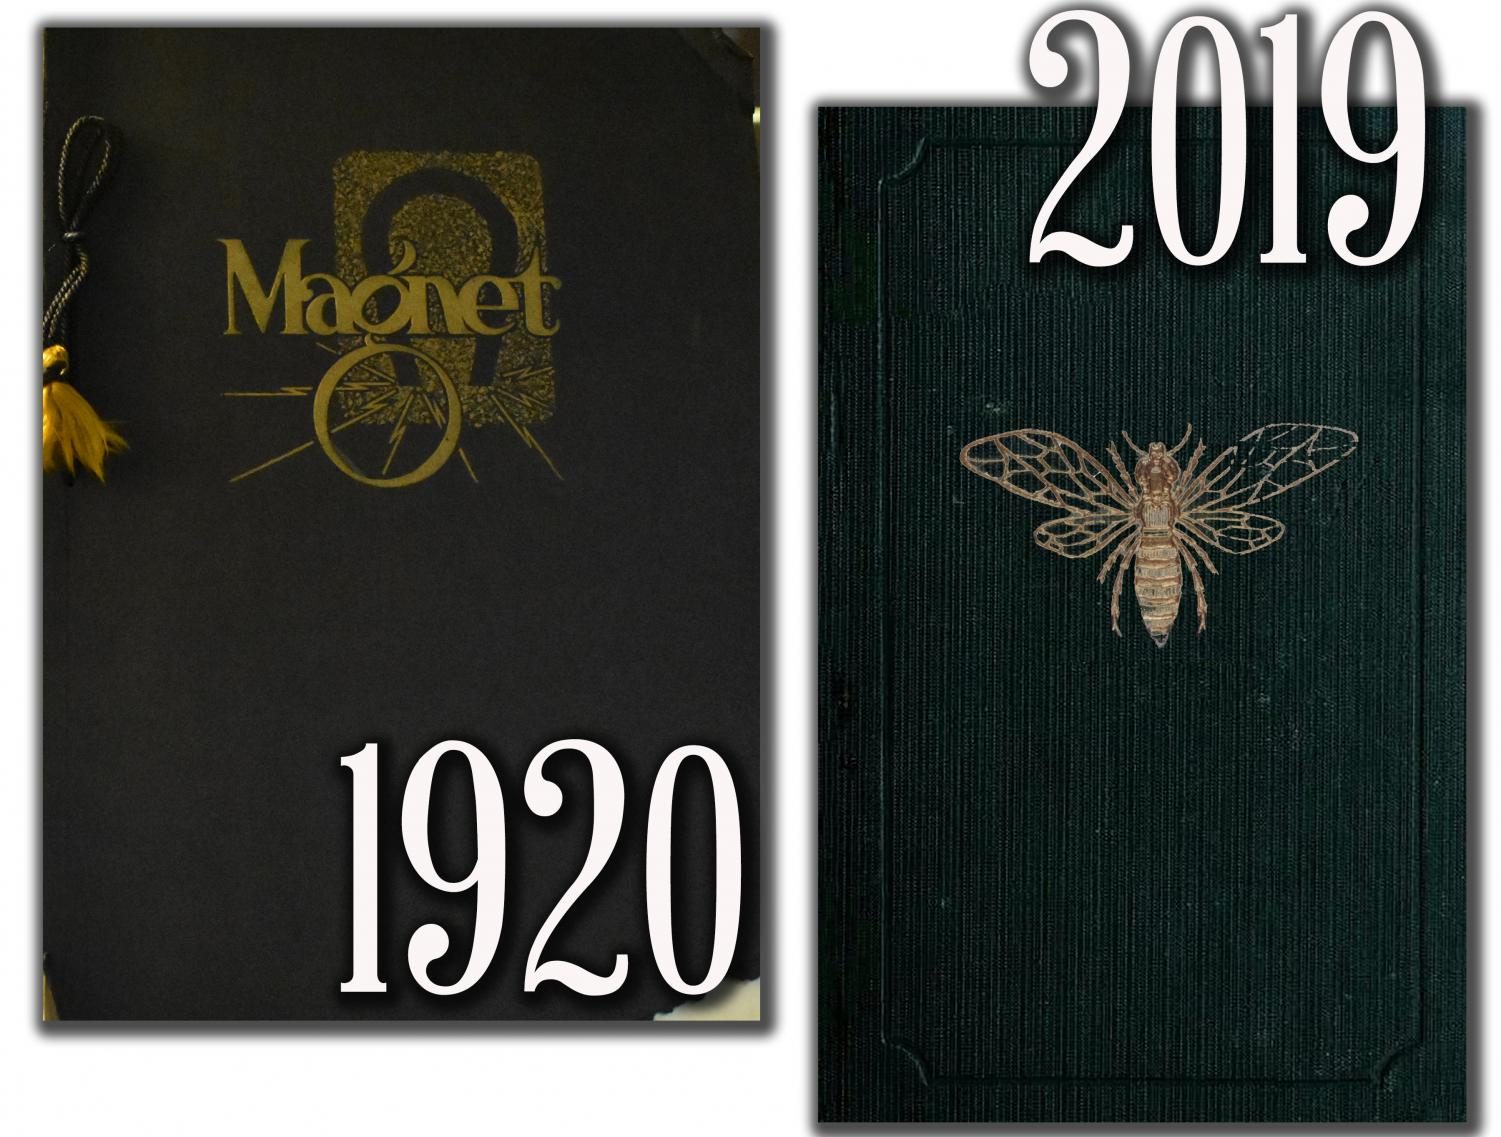 1920 Magnet: Starting a Tradition: Volume 1 of The Magnet looks very different from today's yearbooks. Named after the Magnetic waters that once drew visitors to Lebanon, this paperback yearbook features a tassel binding and a vintage Magnet design that was used on the cover for many years.   2019 Magnet Mockup: A Modern Take: This mockup of the 2019 Magnet cover features a vintage look with a black fabric wrap with a gold foil yellow jacket embossed in the center. This interior of the yearbook will contract the cover with a clean modern design.